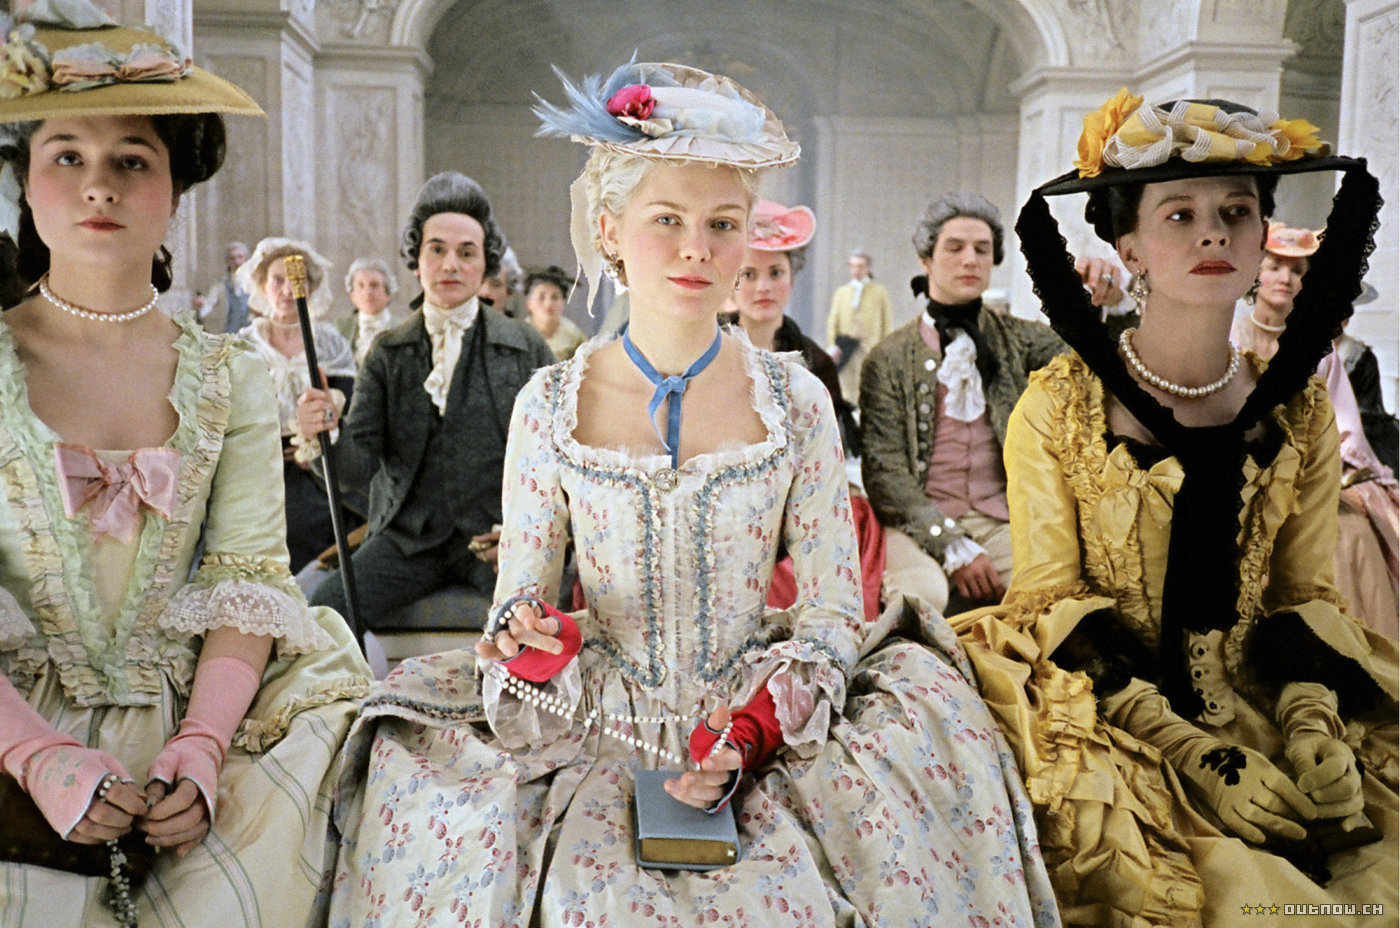 TV and movies: Kirsten Dunst as Marie Antoinette